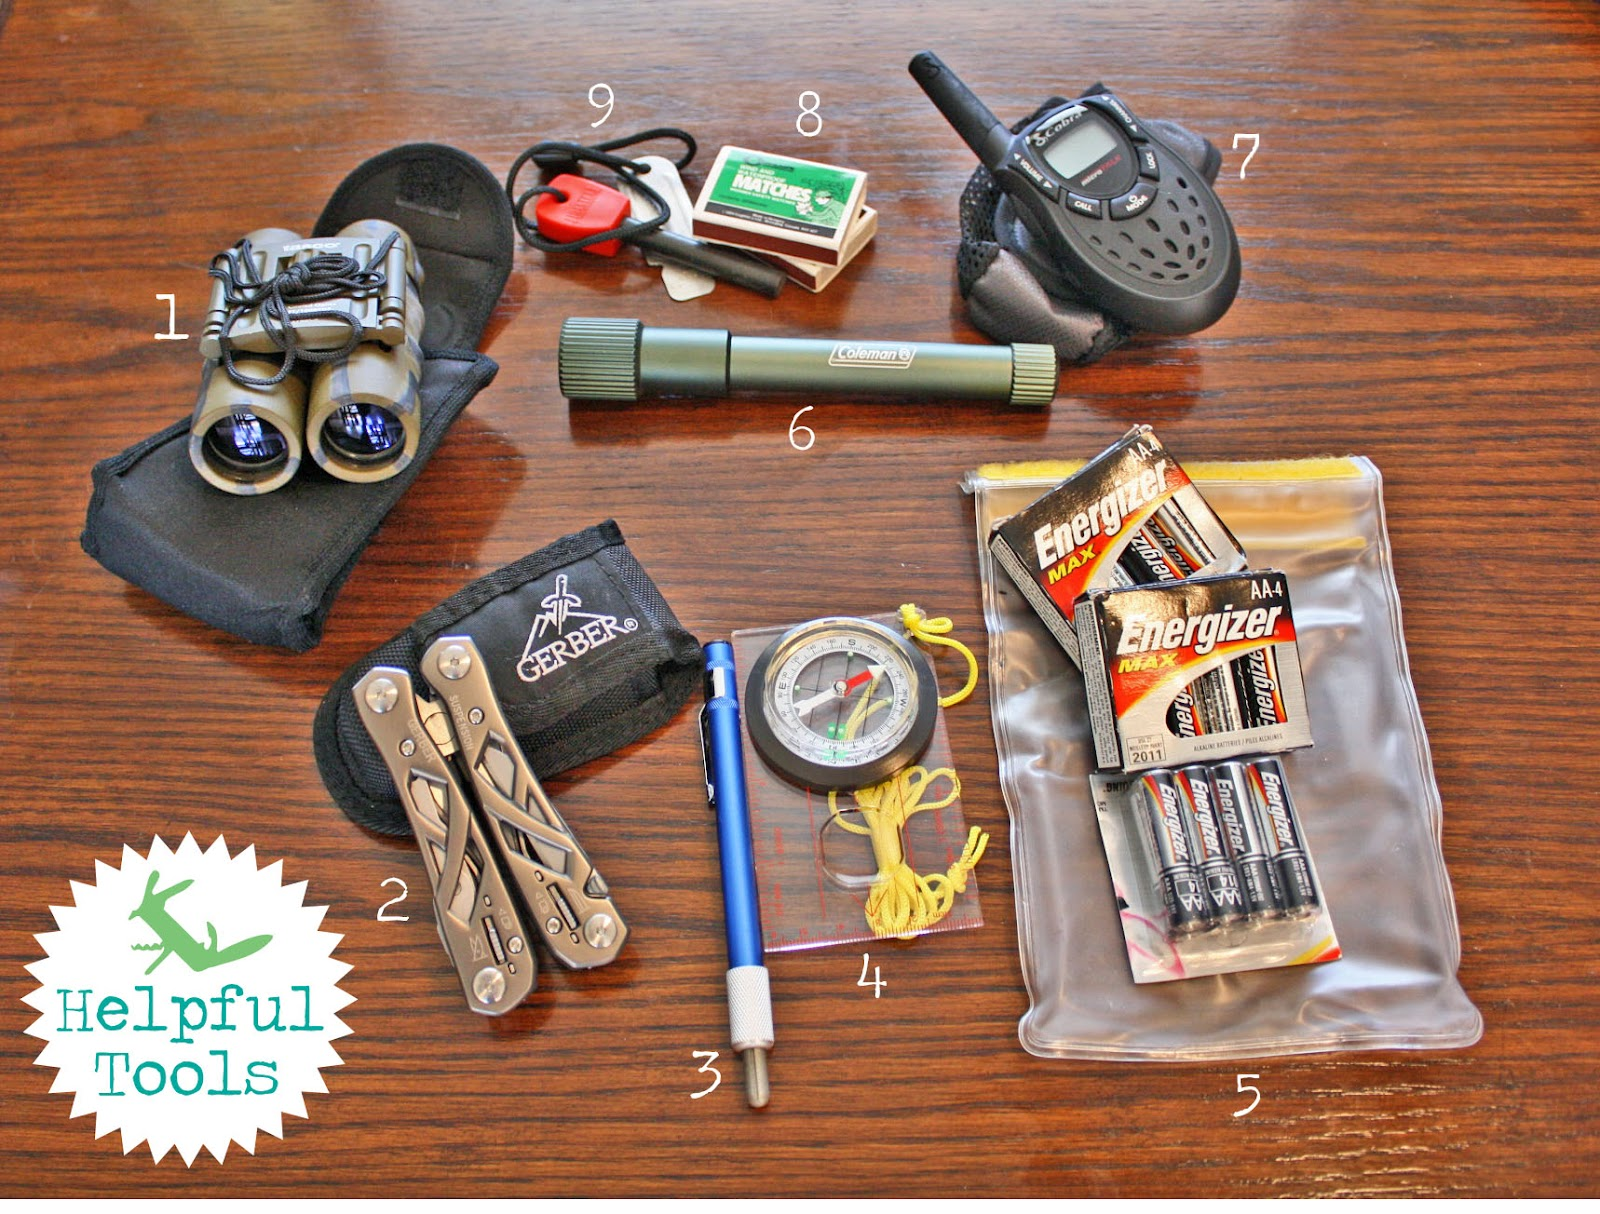 However I Think Most Things Have Will Ly To Pretty Much Anywhere So What Do In My Bug Out Bag Let S Take A K Shall We